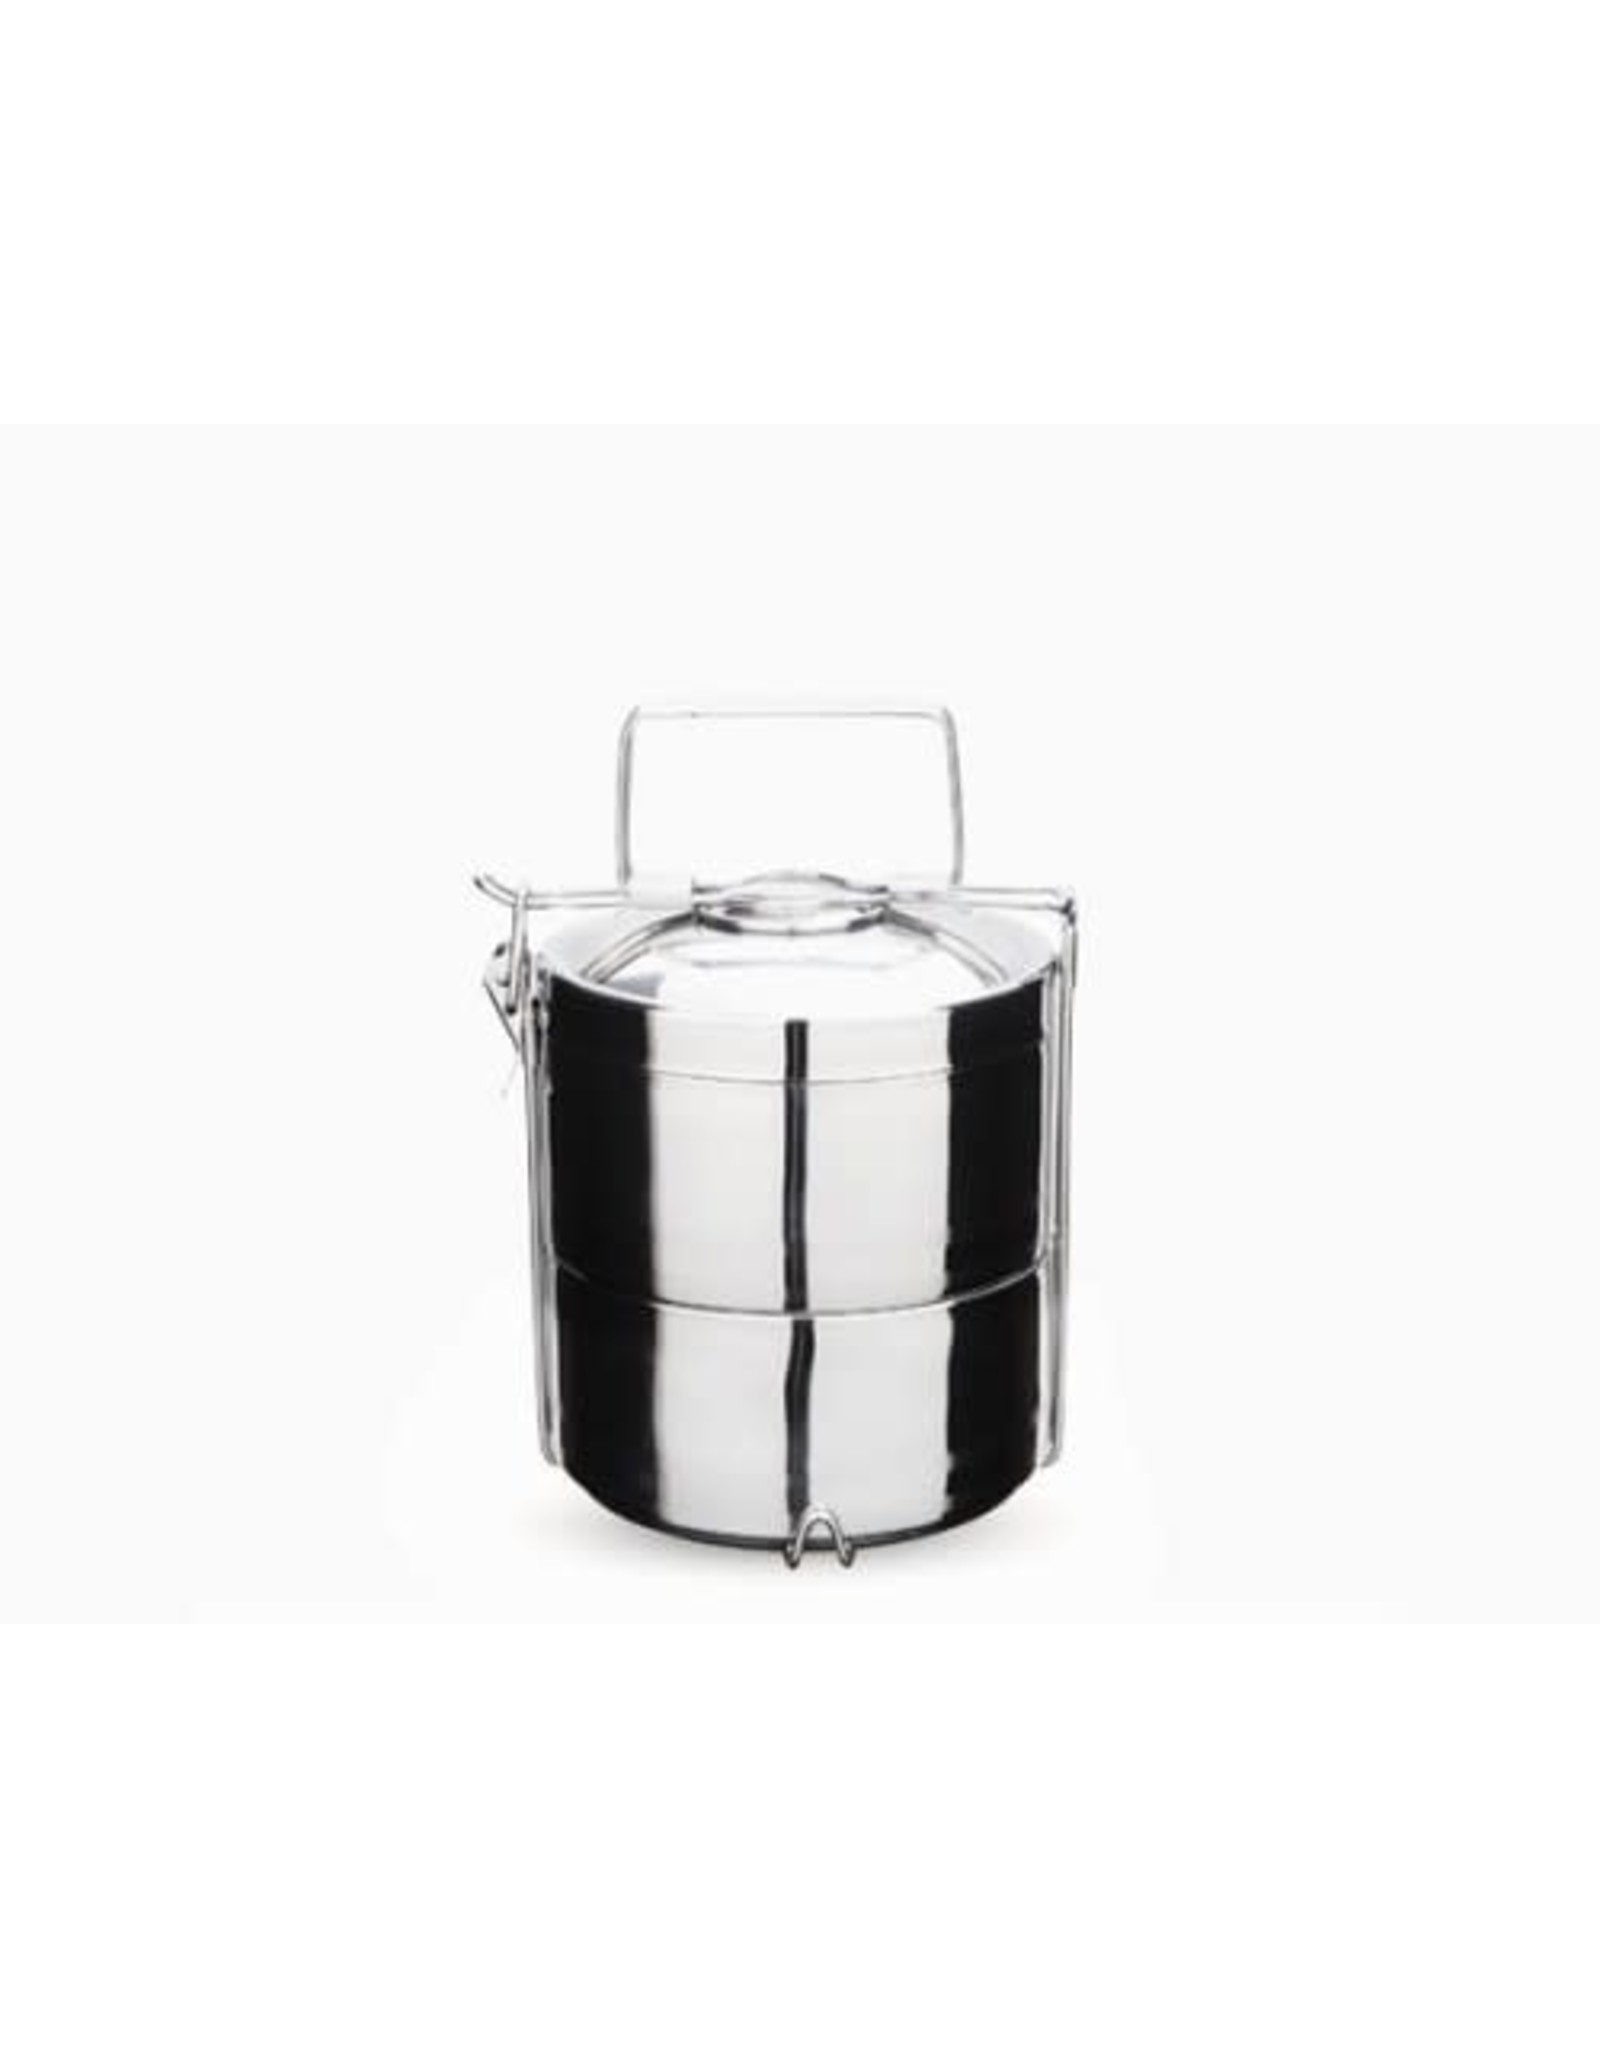 Onyx Onyx 2 Layer Tiffin Storage Container